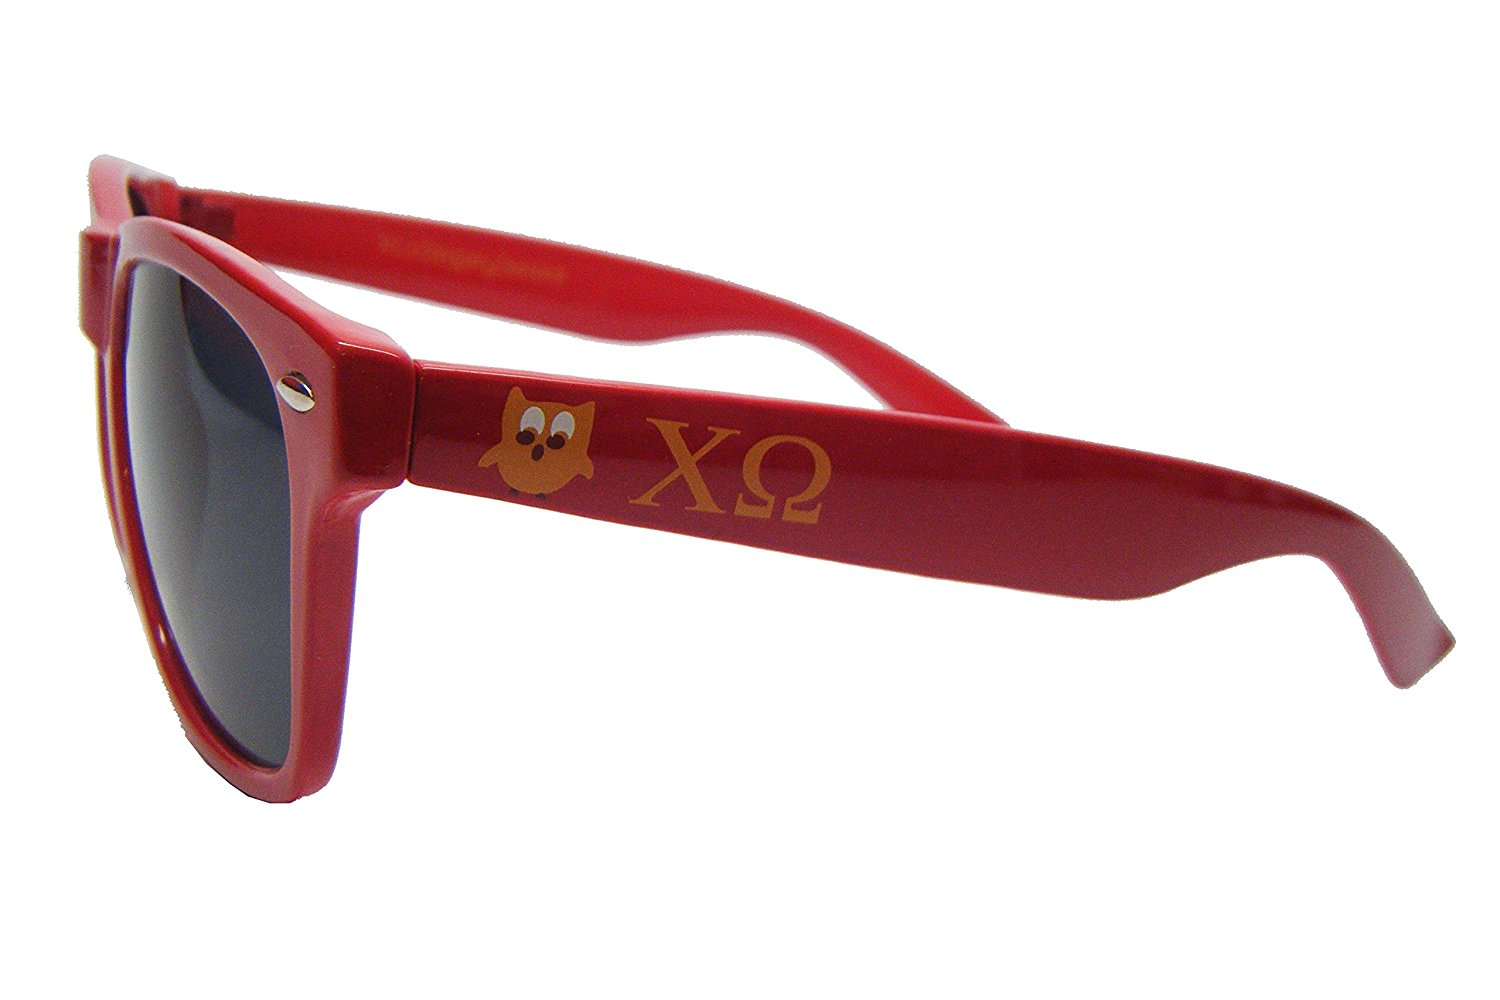 40749a2c33 Chi Omega Gift Ideas - Southern Made Simple